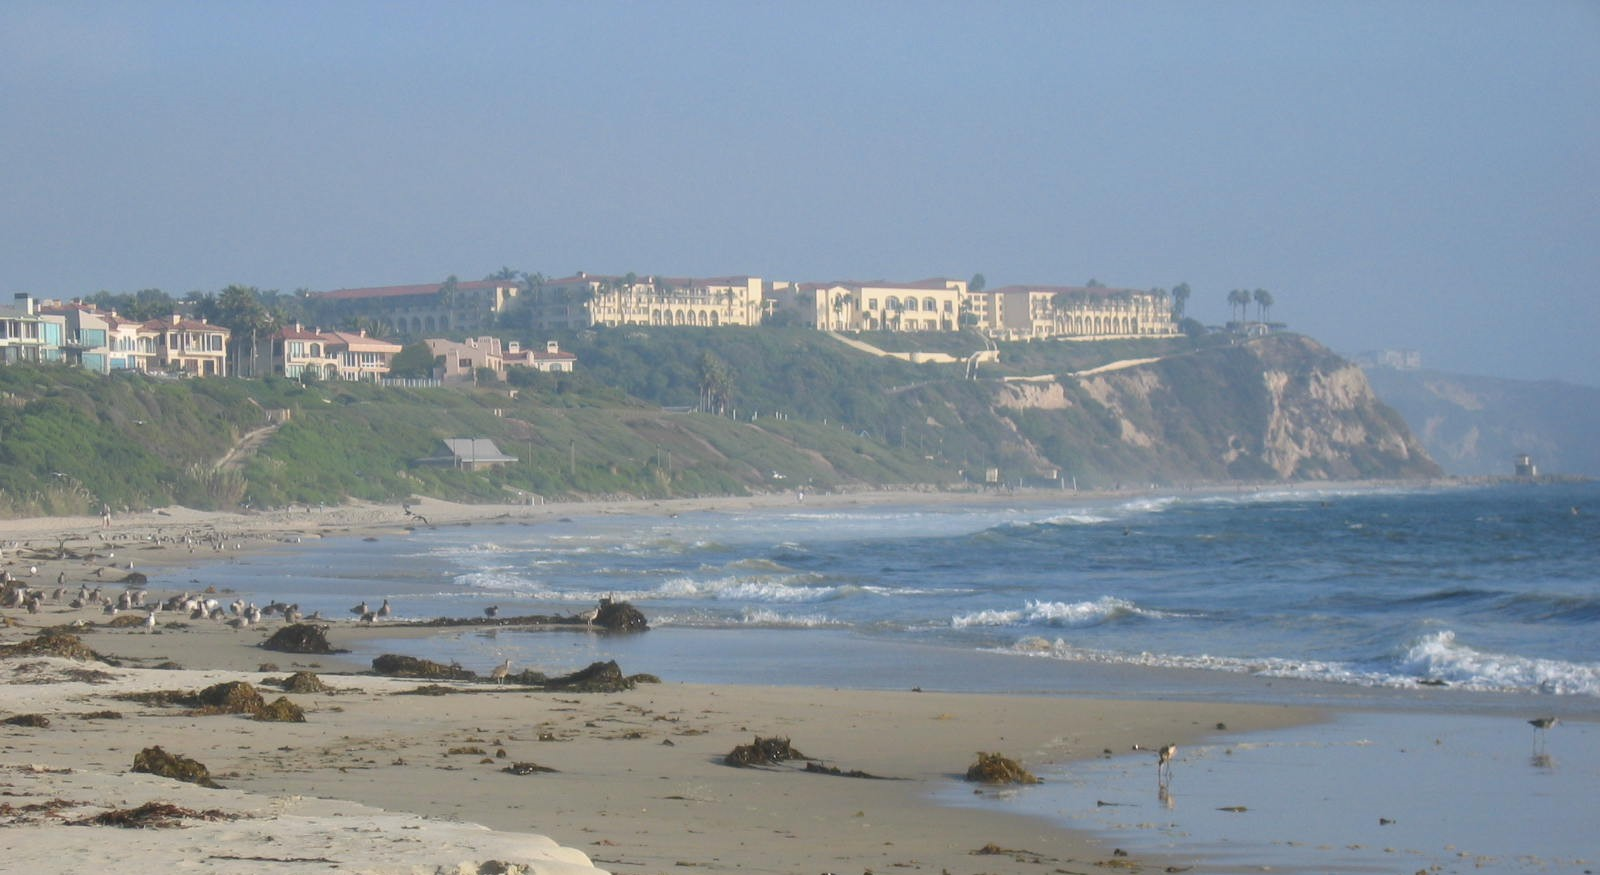 Luxus Hotel The Ritz-Carlton Laguna Niguel